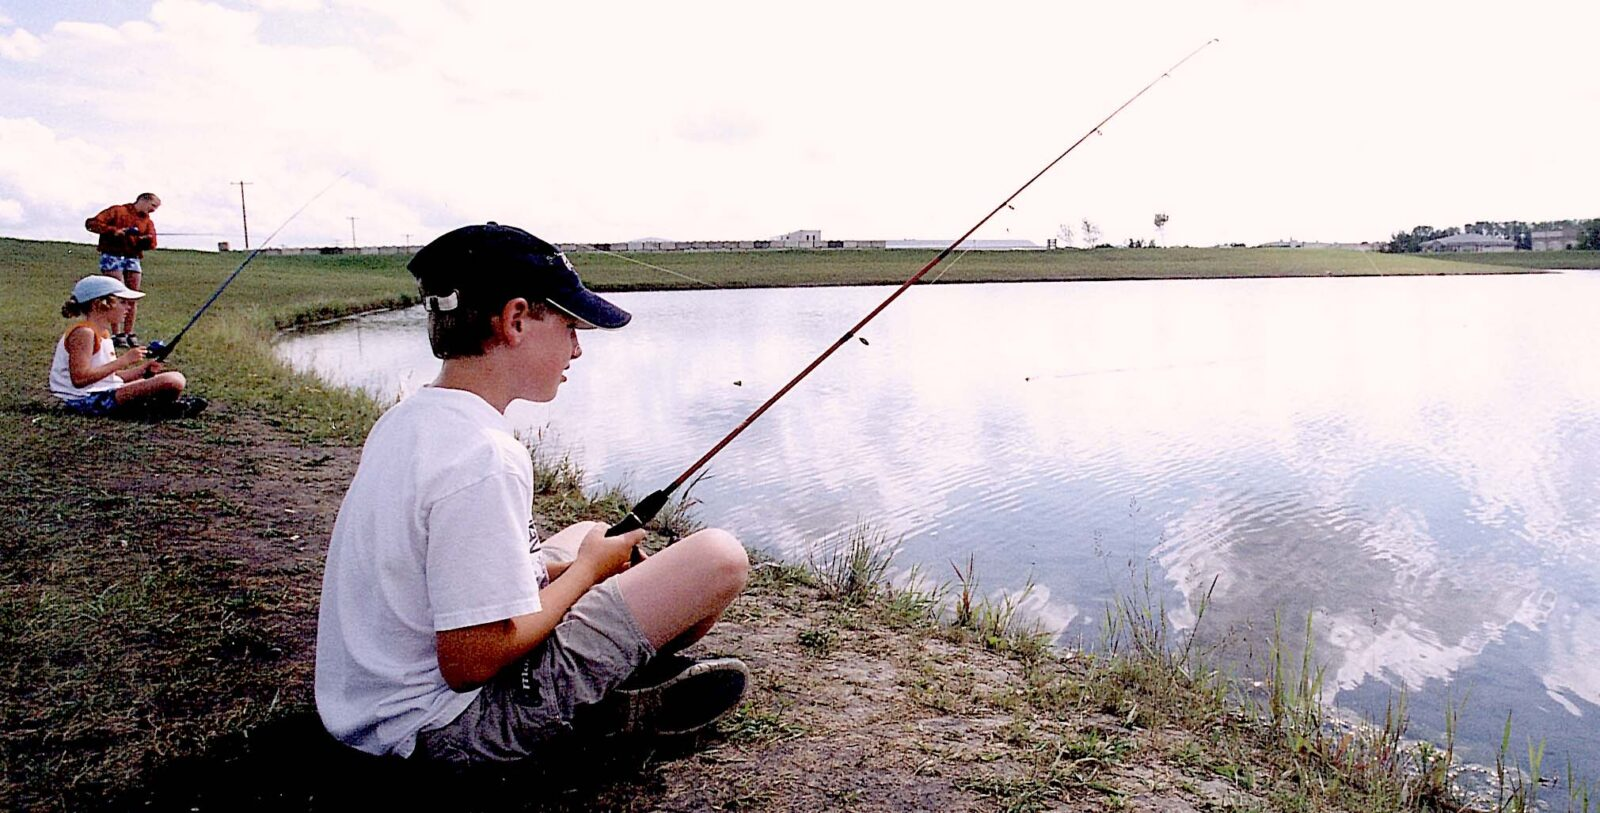 troutpond_kids_fishing_HR